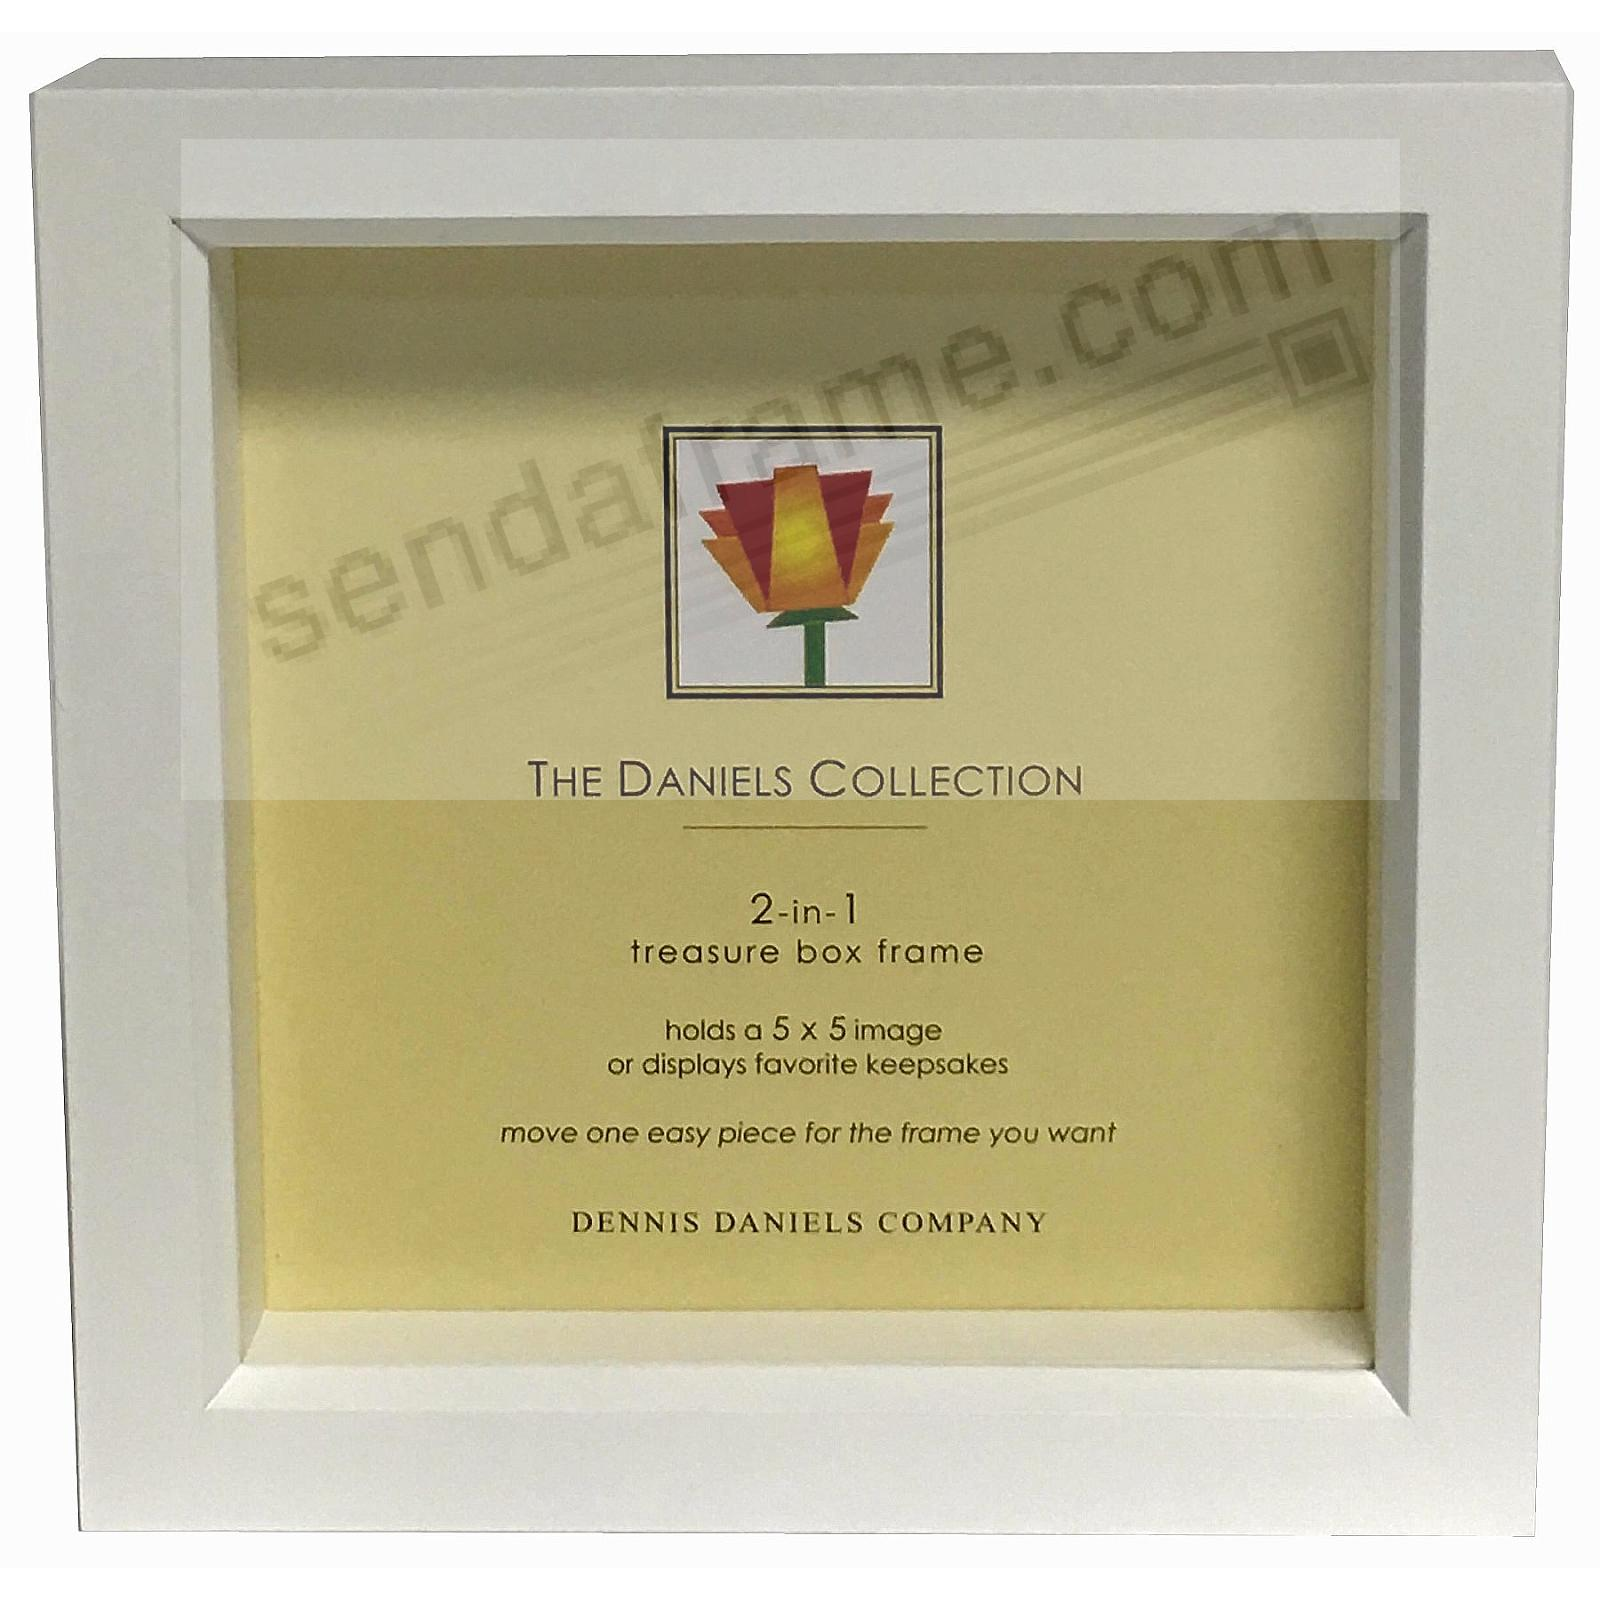 Bright-White stain 5x5 shadow box ½in deep for your print or collectibles by Dennis Daniels®